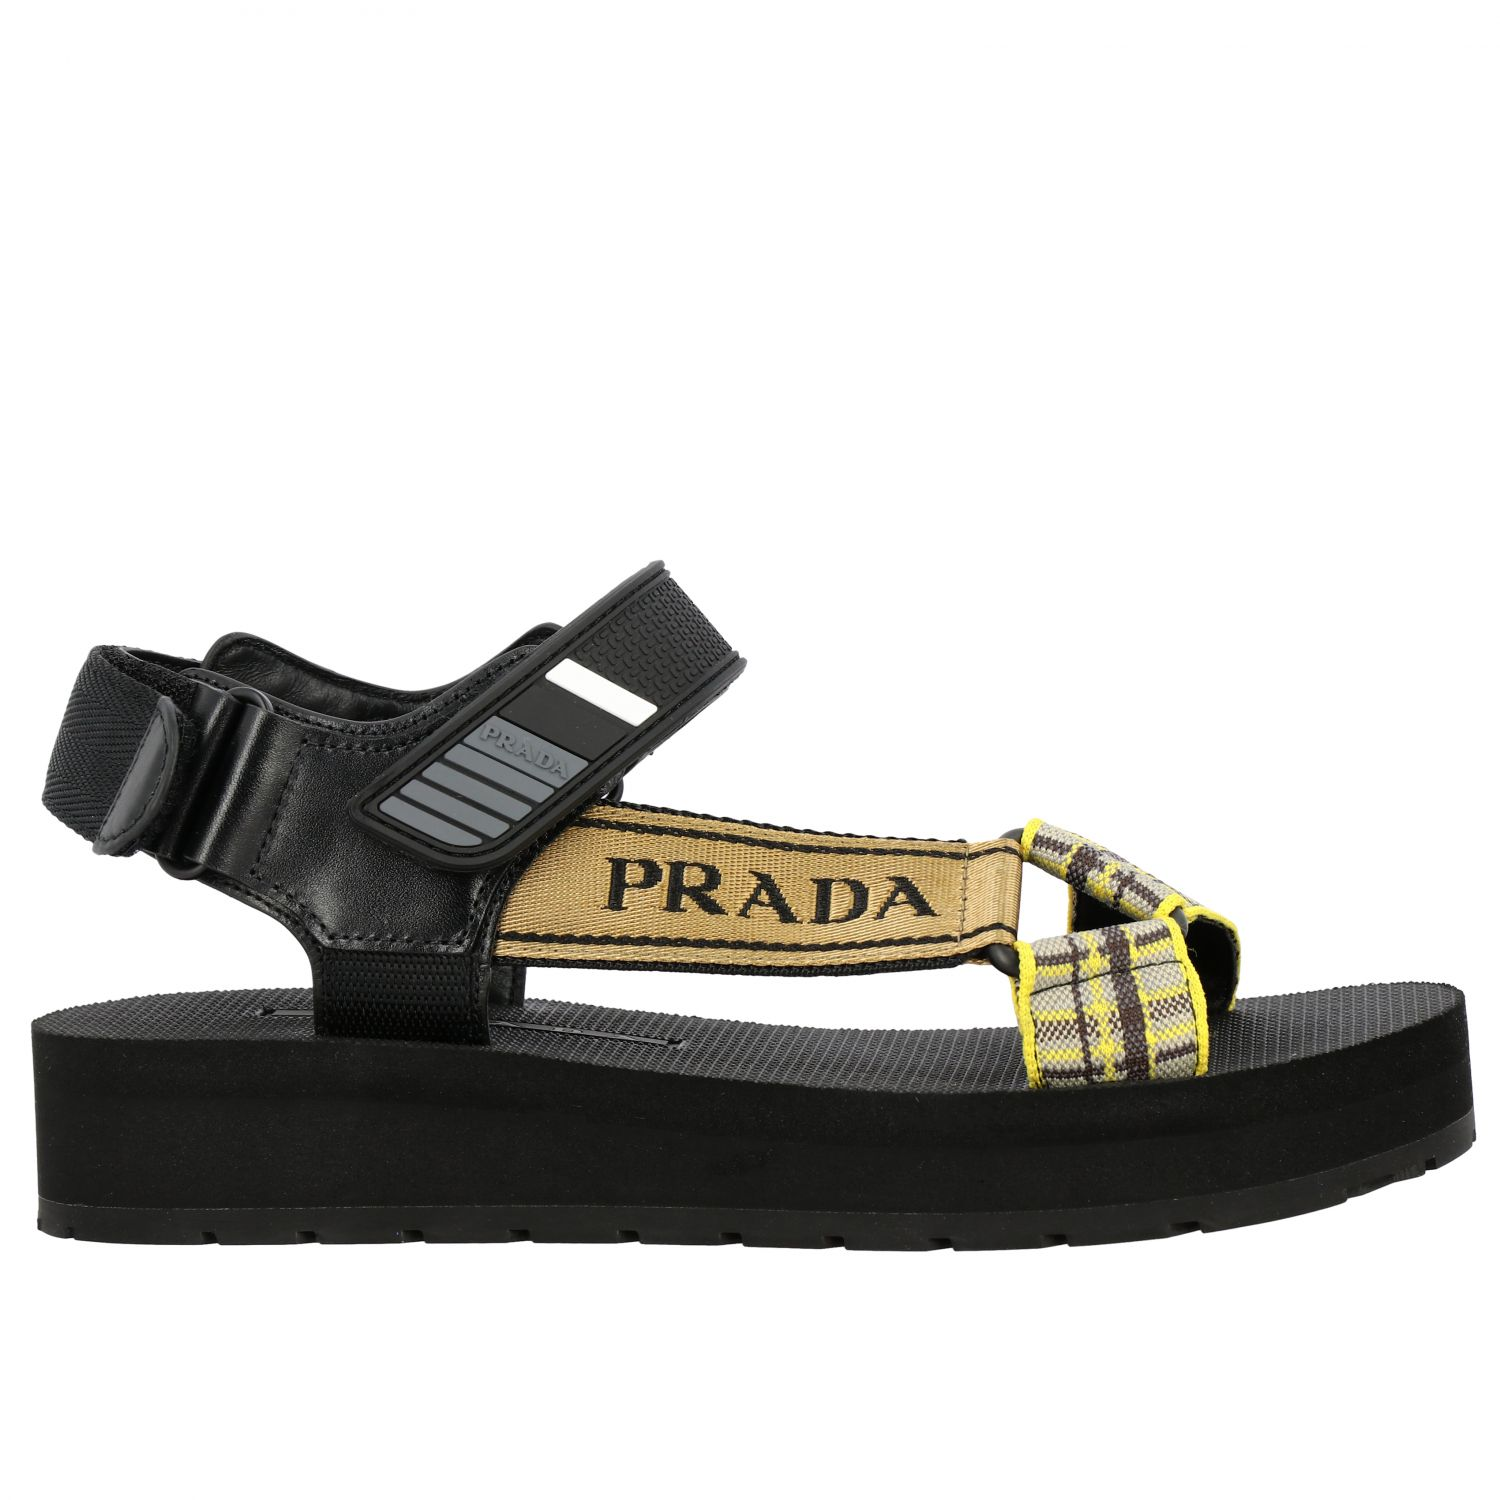 Shoes women Prada black 1